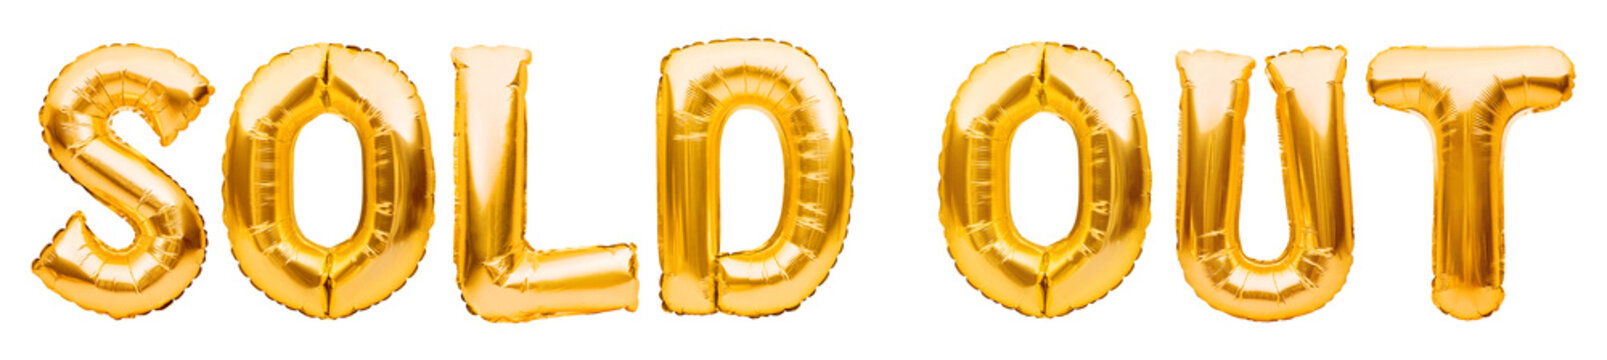 Words SOLD OUT made of golden inflatable balloons isolated on white background. Helium balloons gold foil forming words, sold out banner. Discount and advertisement